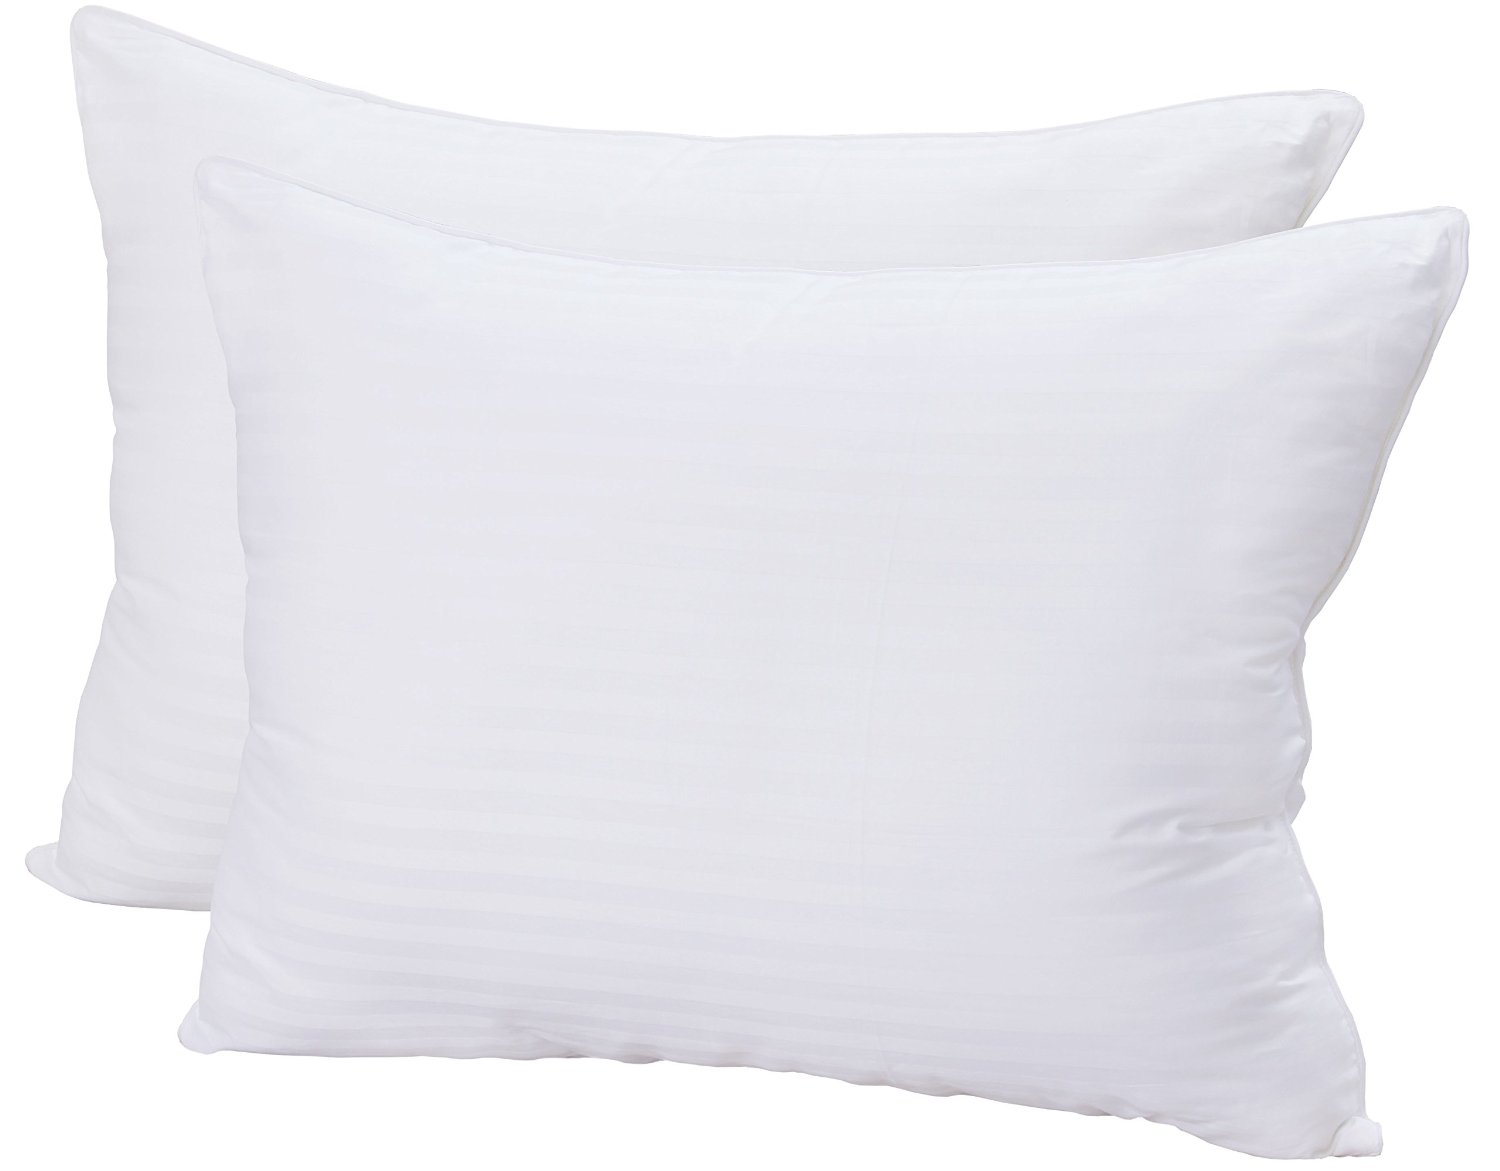 the best down alternative pillows available online | best goose